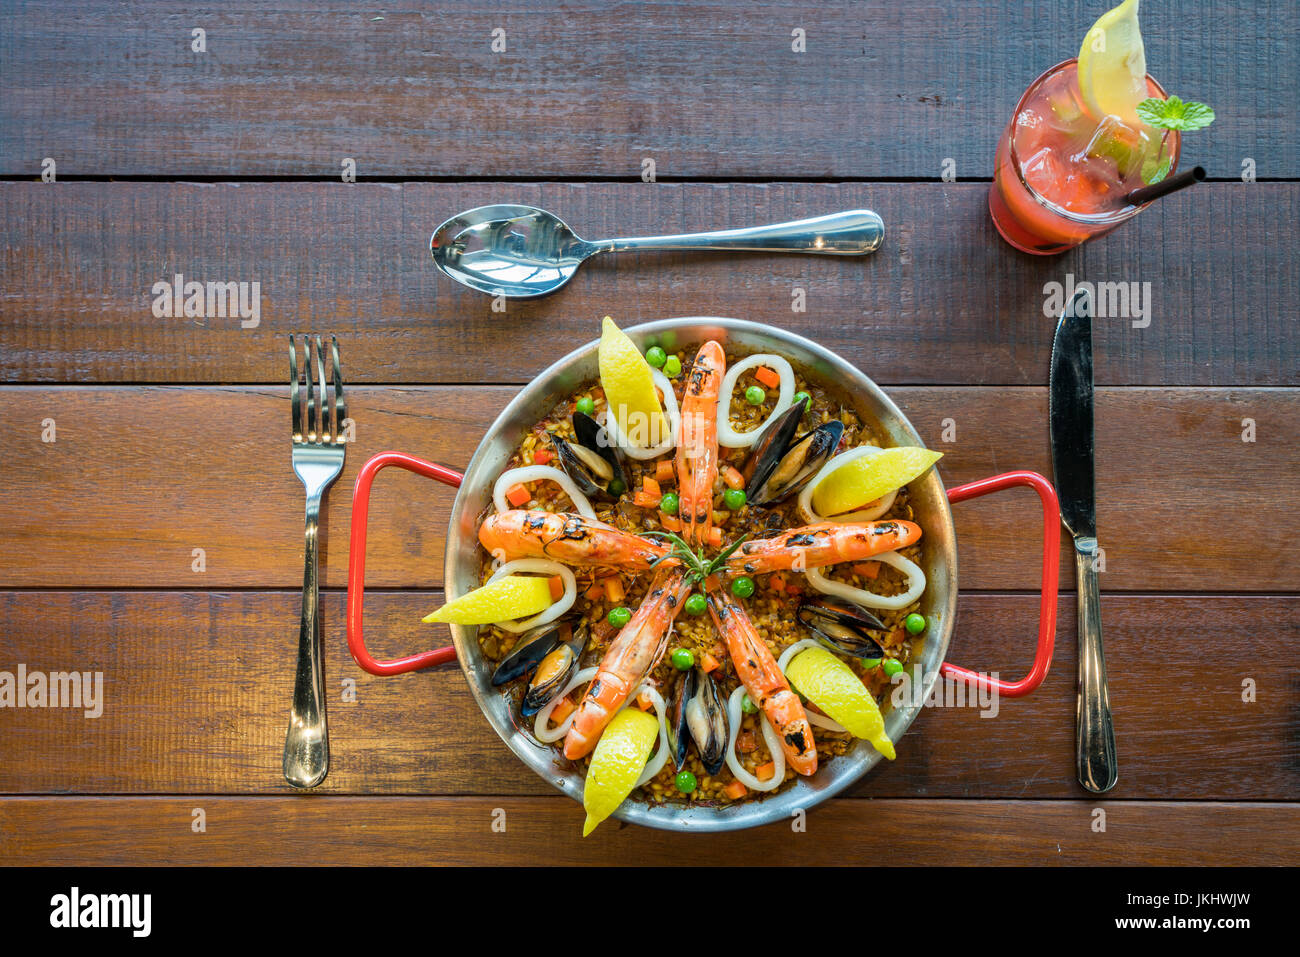 Paella with seafood vegetables and saffron served in the traditional pan top view. - Stock Image